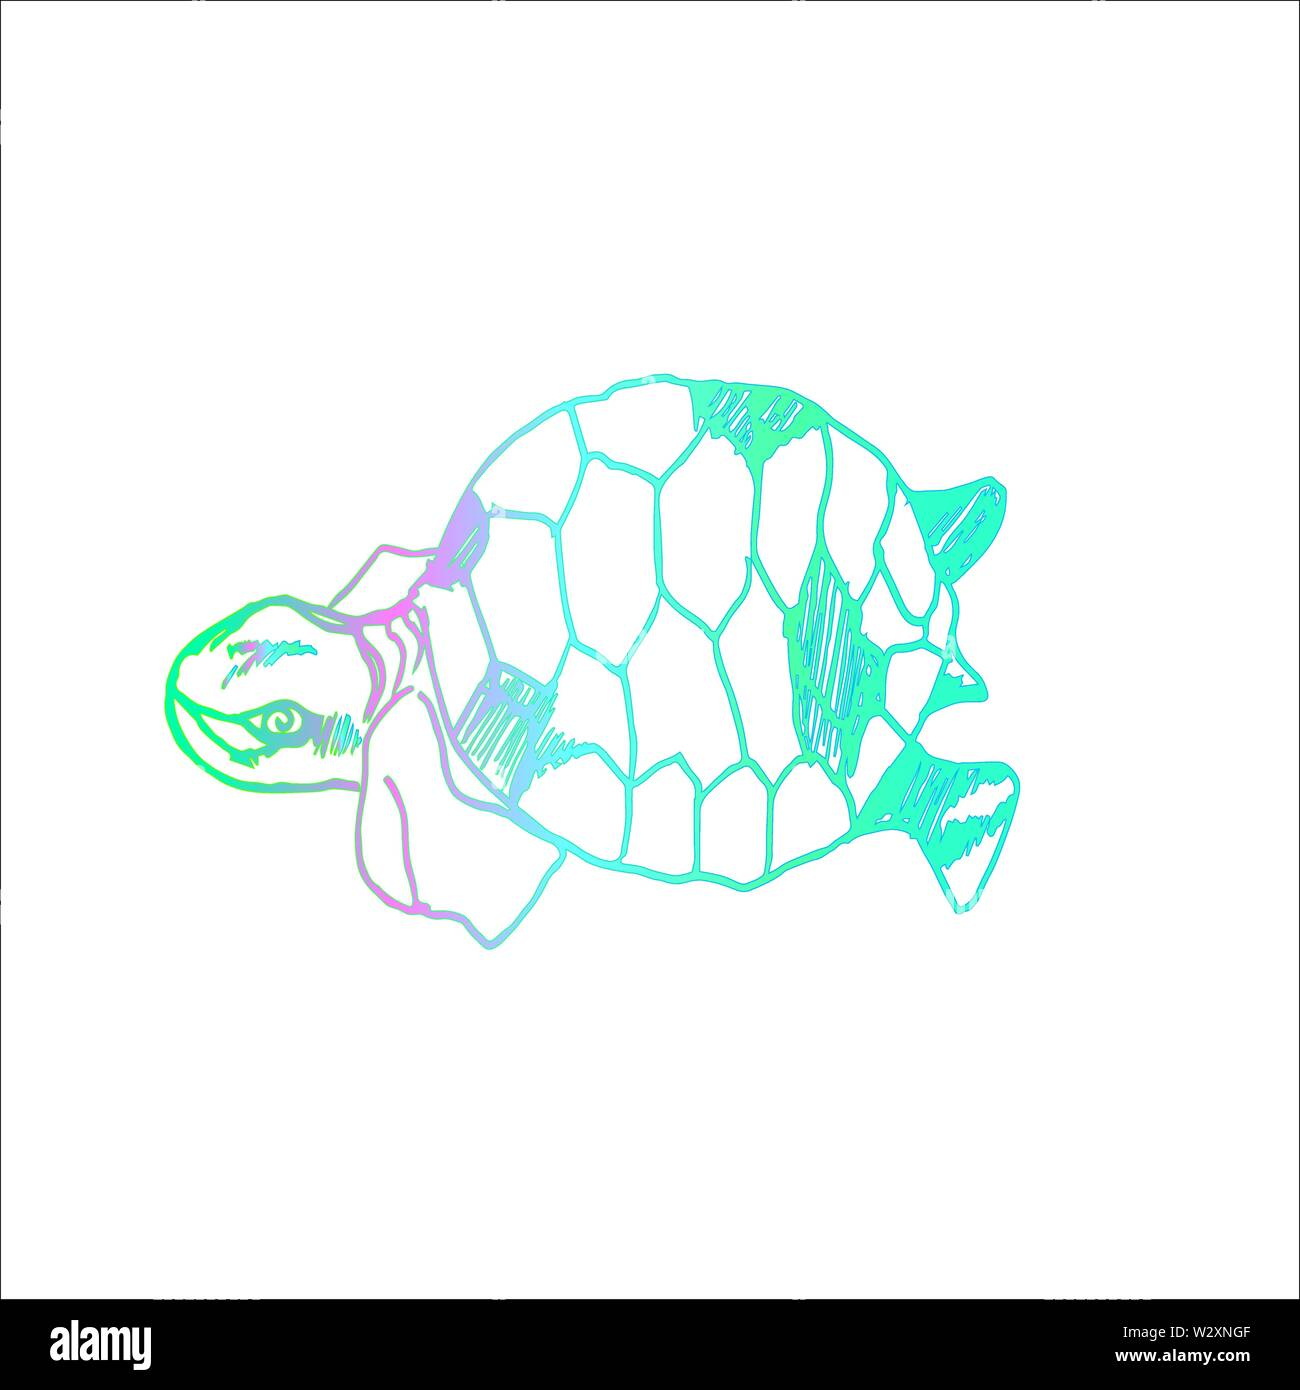 Color illustration of a psychedelic turtle. Tattoo idea. - Stock Image